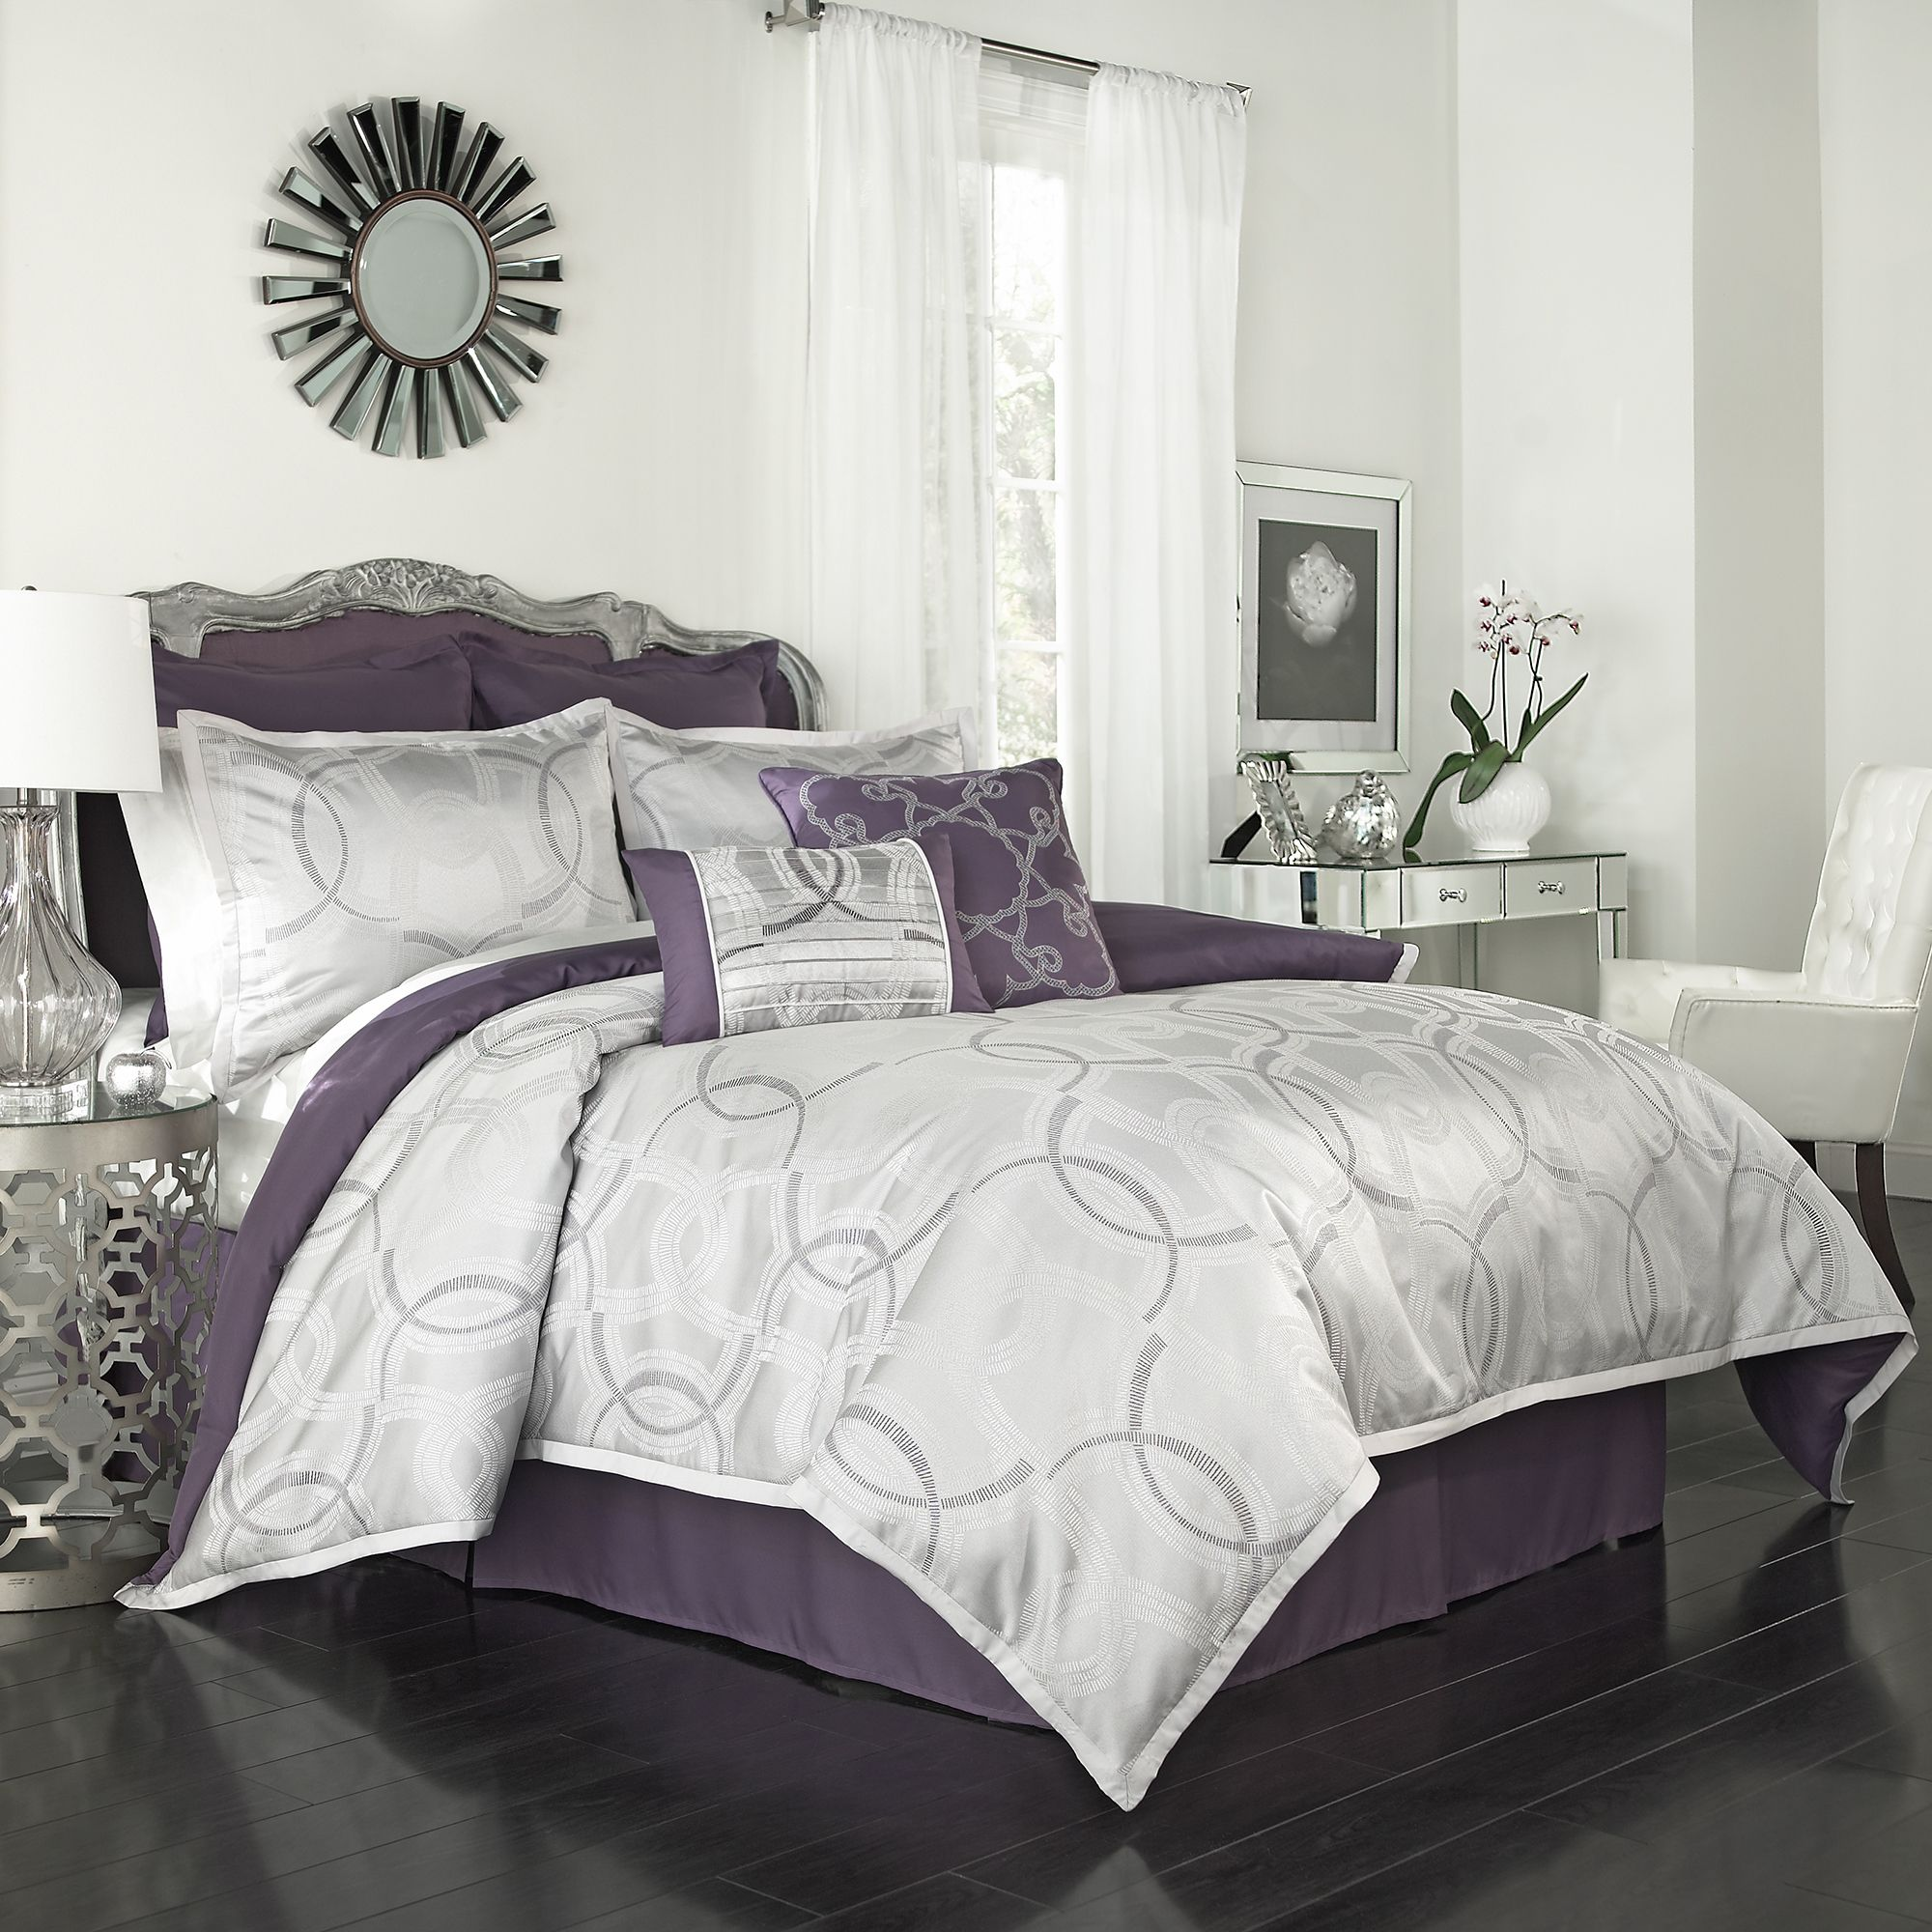 Casino 8 Piece Comforter Set Grey Products And Purple